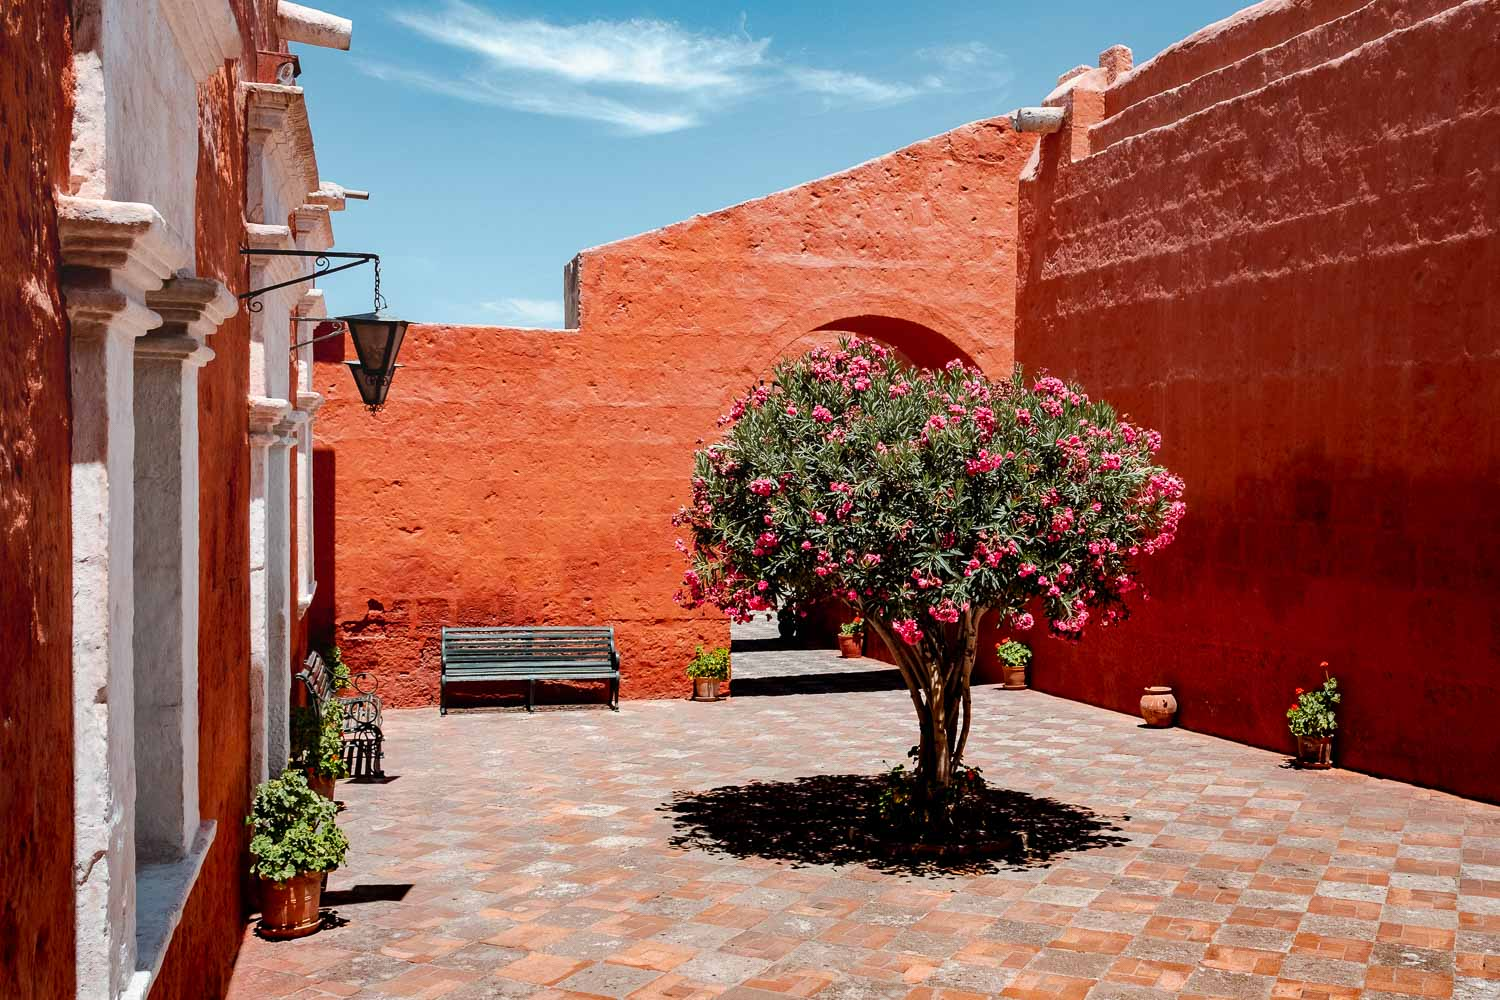 """A red courtyard in the Santa Catalina Monastery, Arequipa, Peru. Travel photography and guide by © Natasha Lequepeys for """"And Then I Met Yoko"""". #peru #photoblog #fujifilm"""